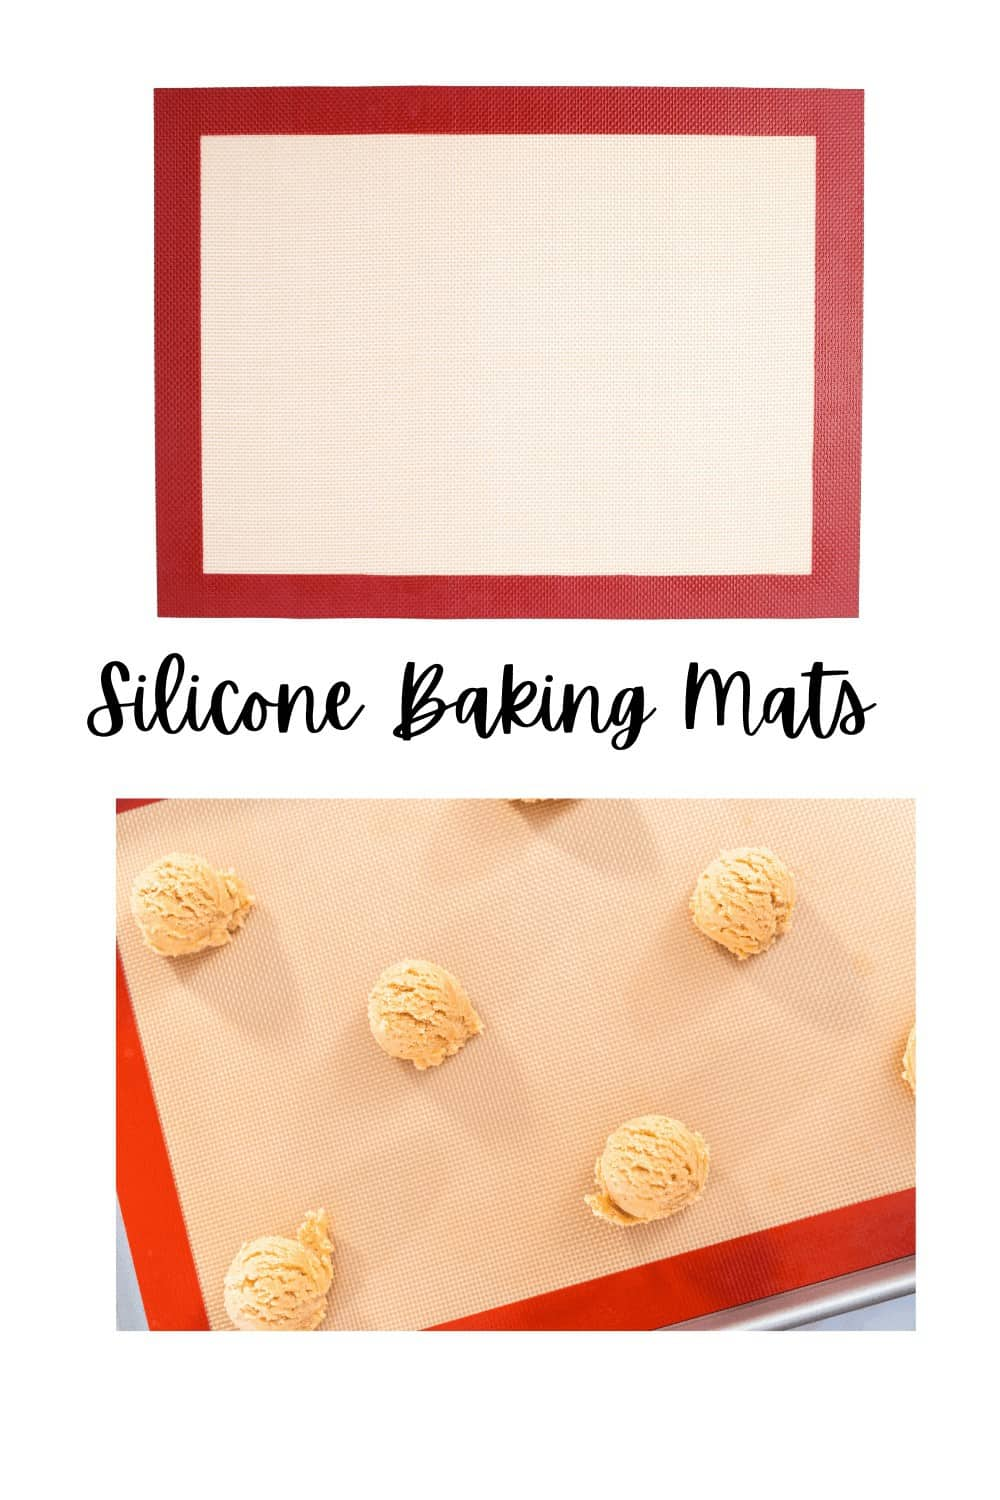 baking mats made of silicone